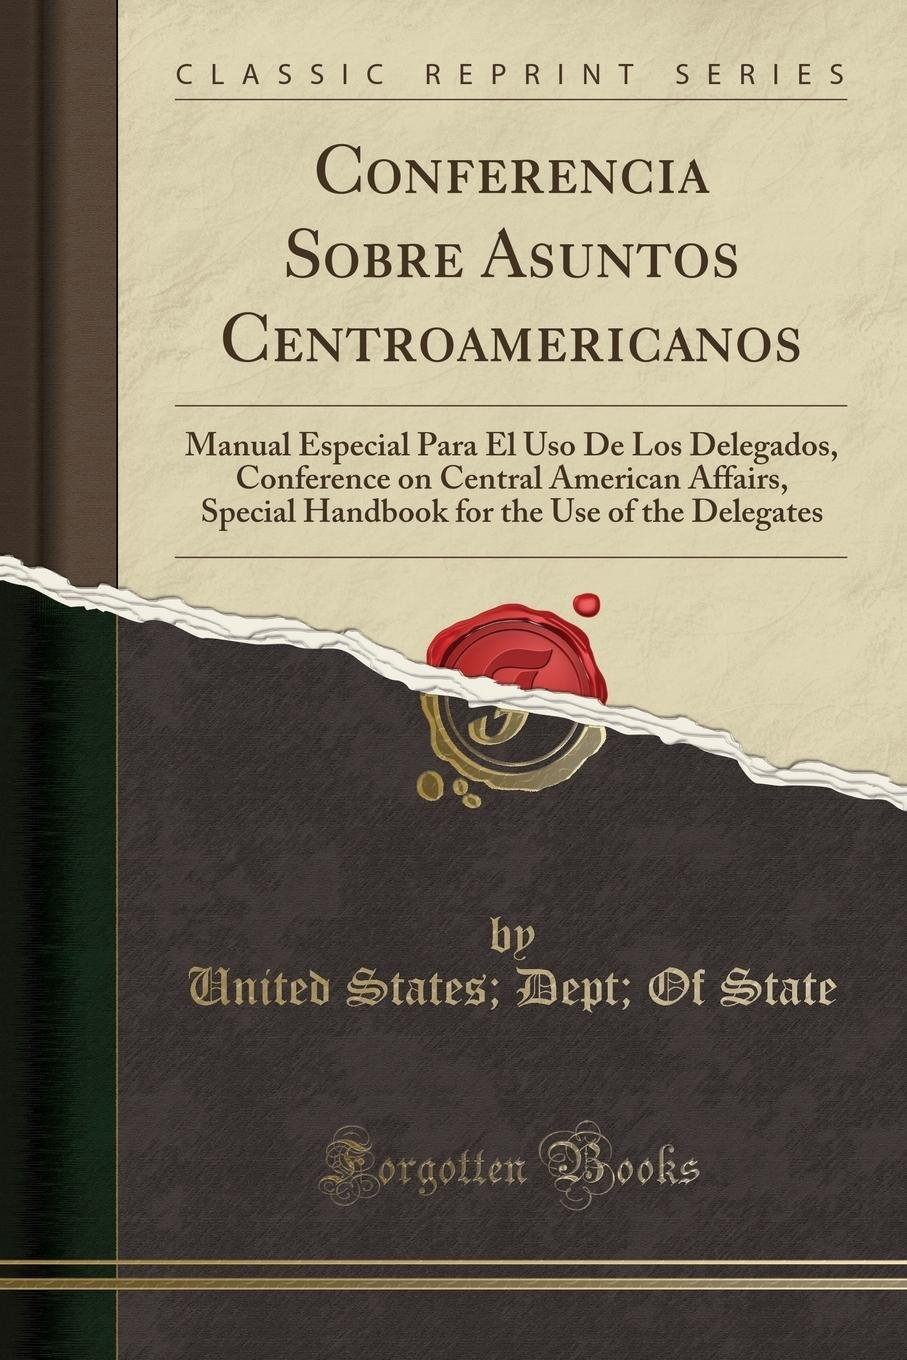 Conferencia Sobre Asuntos Centroamericanos: Manual Especial Para El Uso De Los Delegados, Conference on Central American Affairs, Special Handbook for the Use of the Delegates (Classic Reprint) ebook